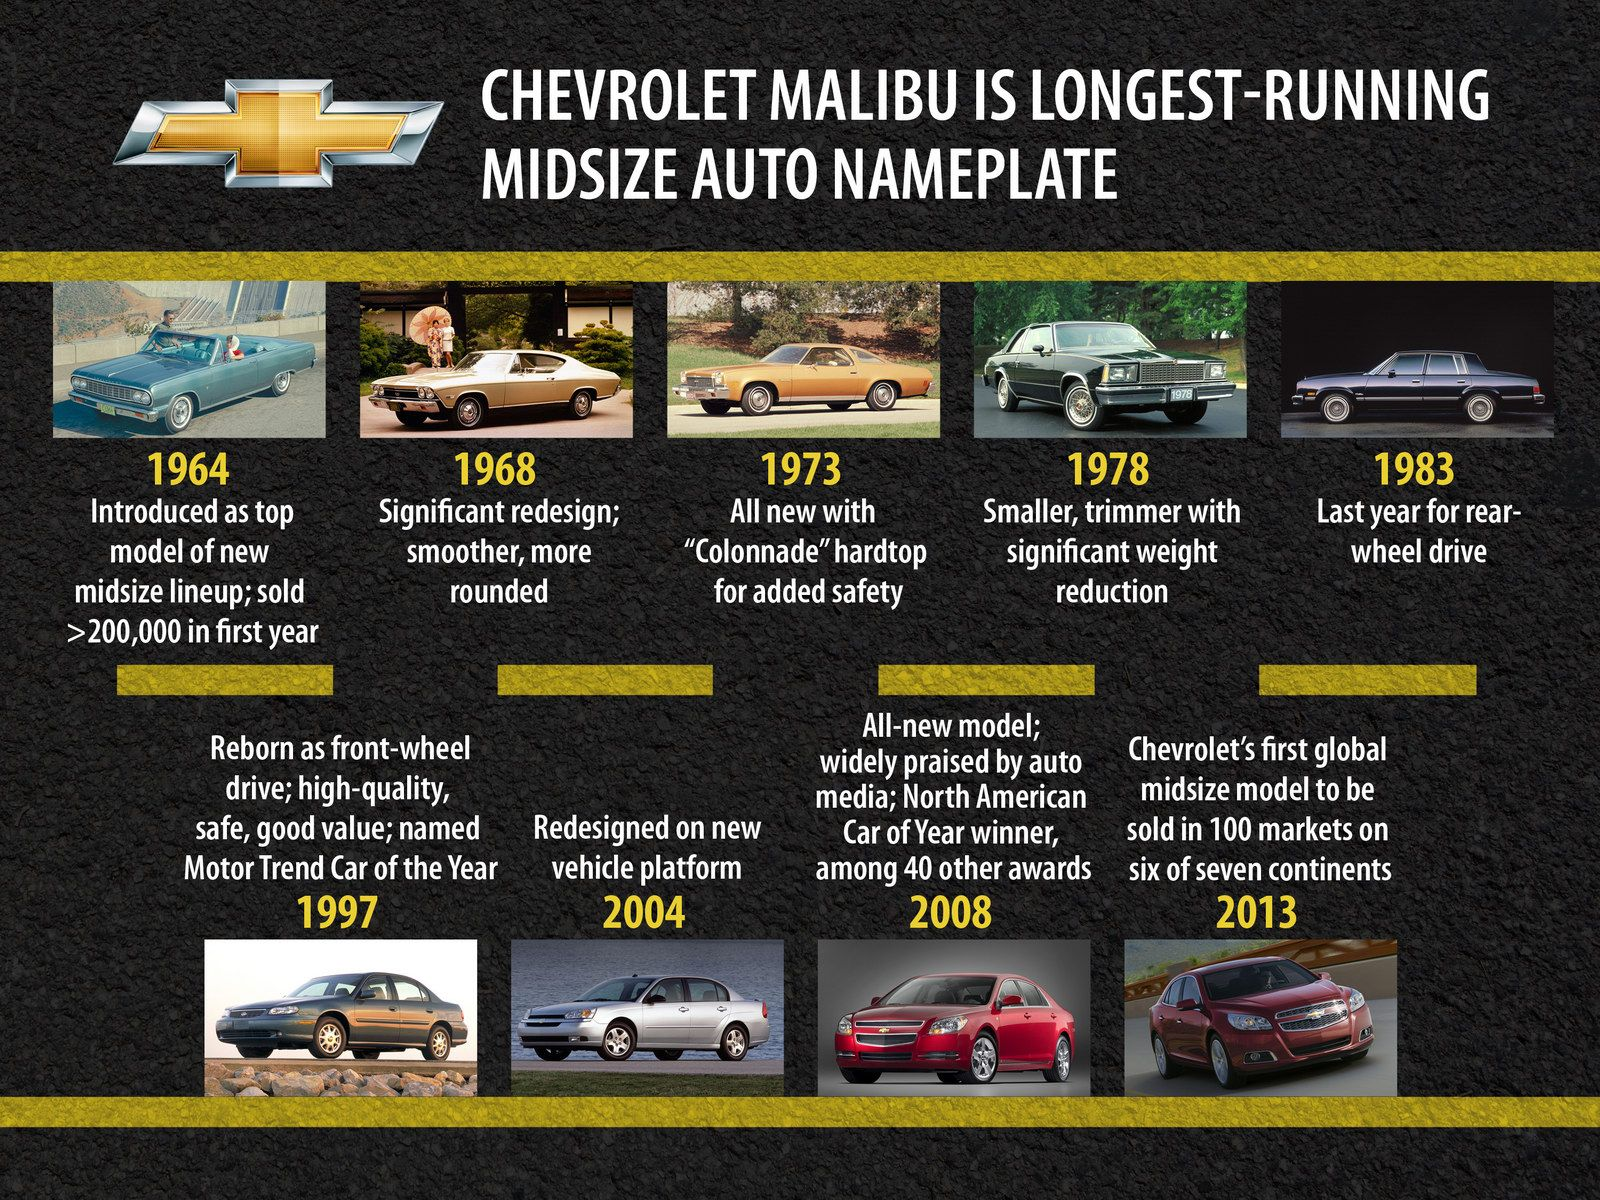 A Timeline Of The Chevrolet Malibu As It Approaches Its 50th